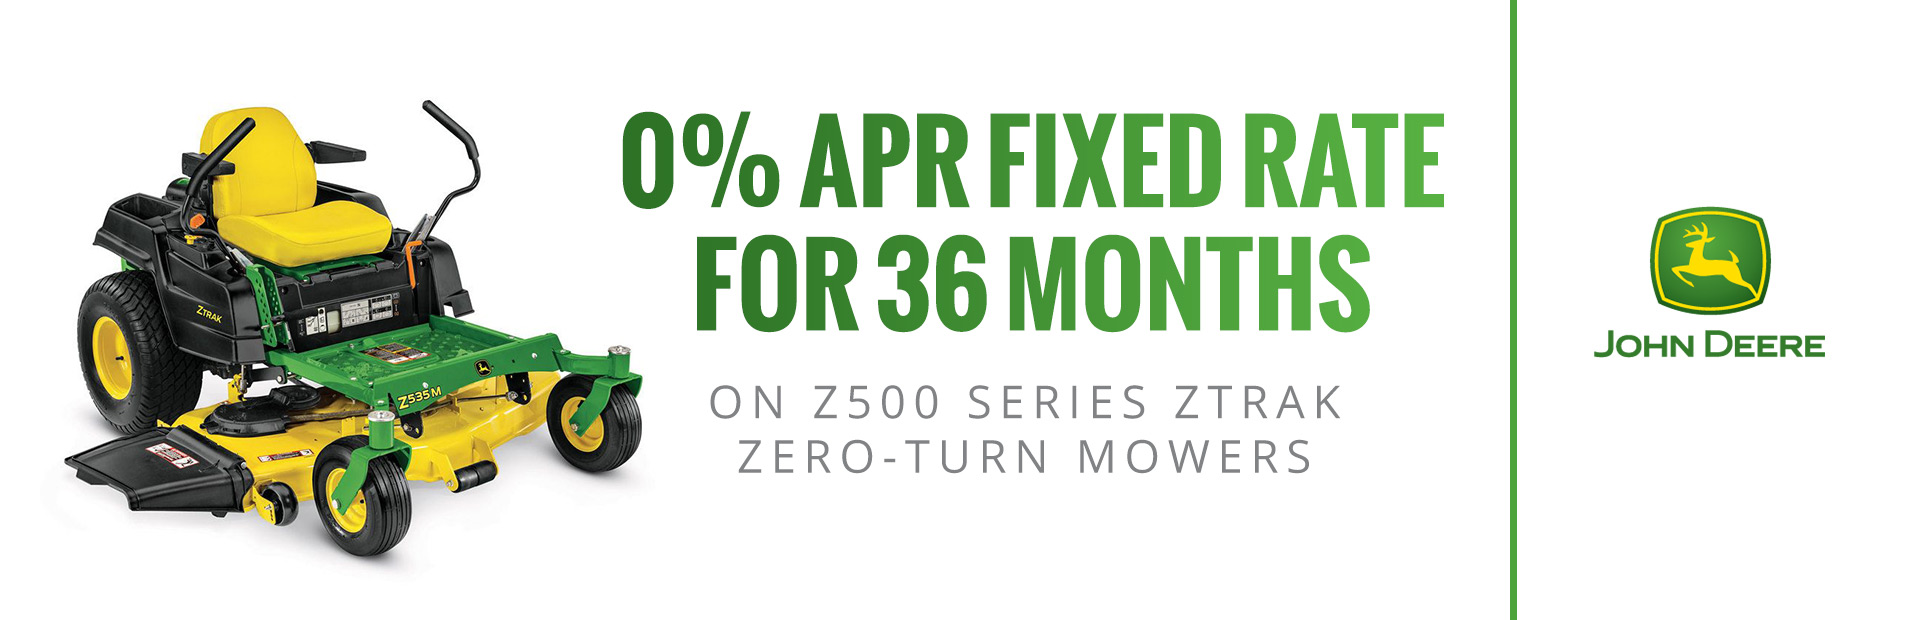 John Deere: 0% APR fixed rate for 36 months on Z500 Series ZT